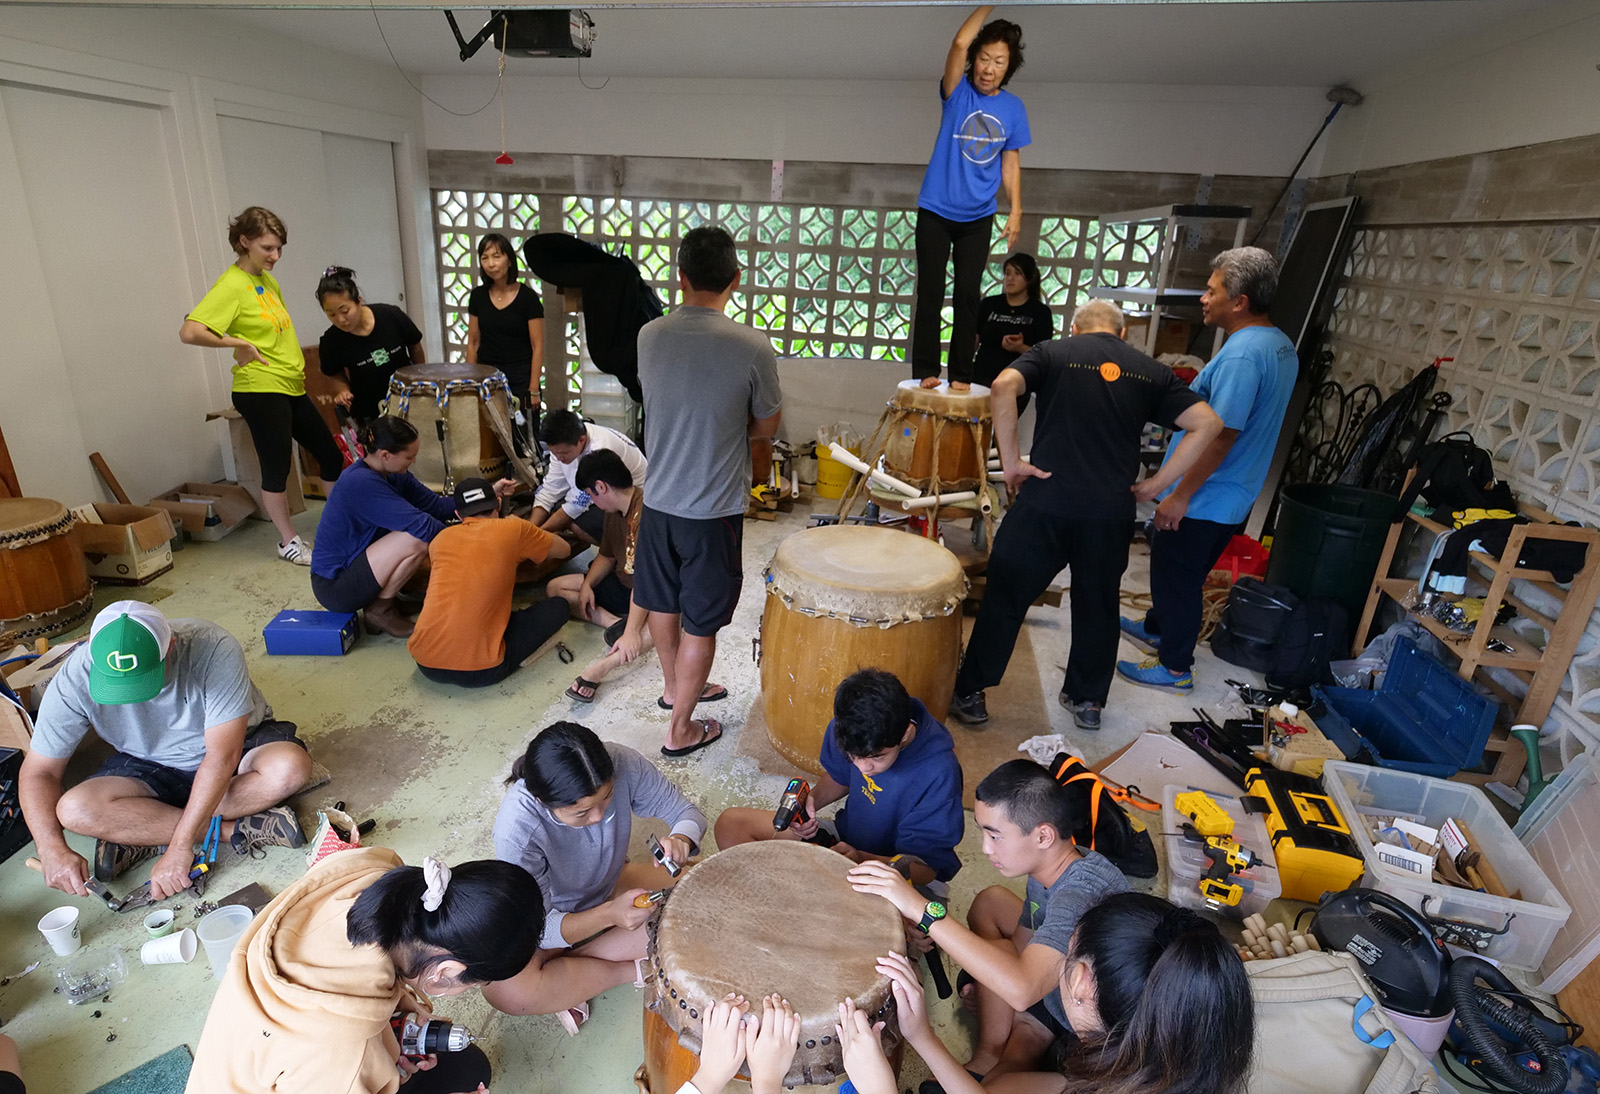 <p>Reskinning the taiko drums used for classes and performances by the Taiko Center of the Pacific is a group effort that requires many hands. The students and families of this community are eager to help as they gather together over two long days to repair and revitalize their instruments.</p>